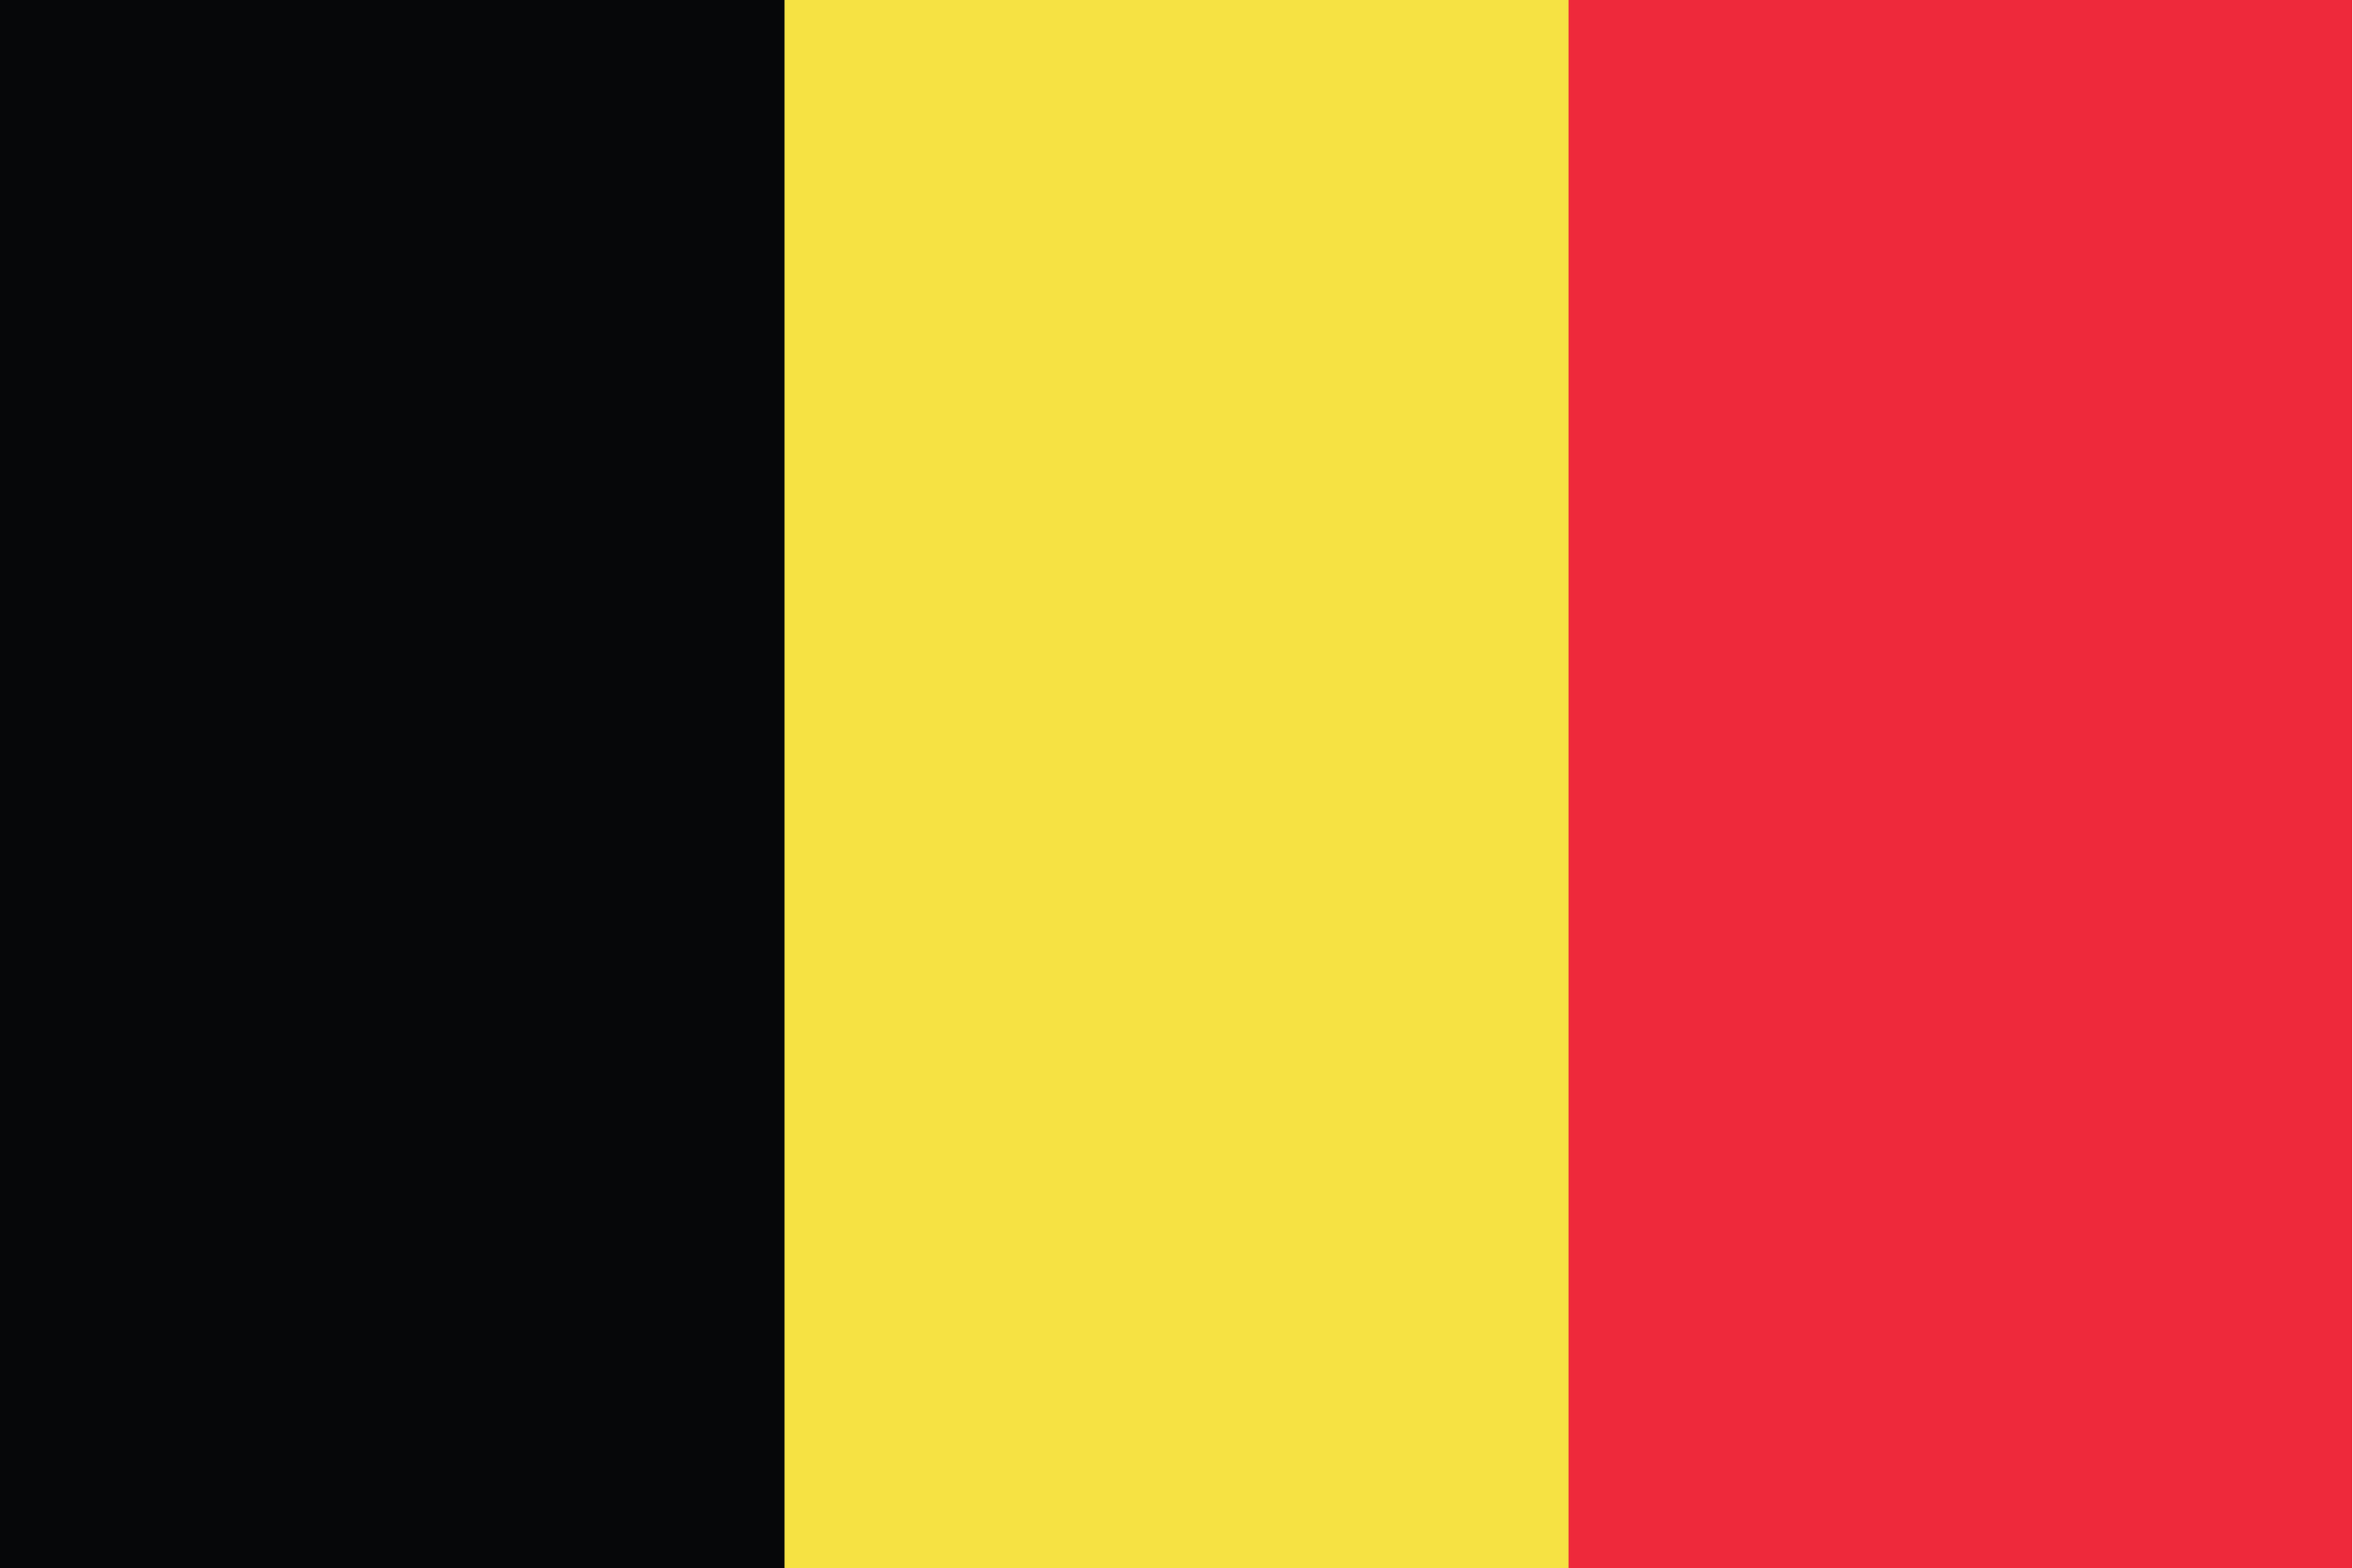 The Flag of Belgium is a tricolor featuring three equal vertical bands of black (hoist side), yellow, and red.